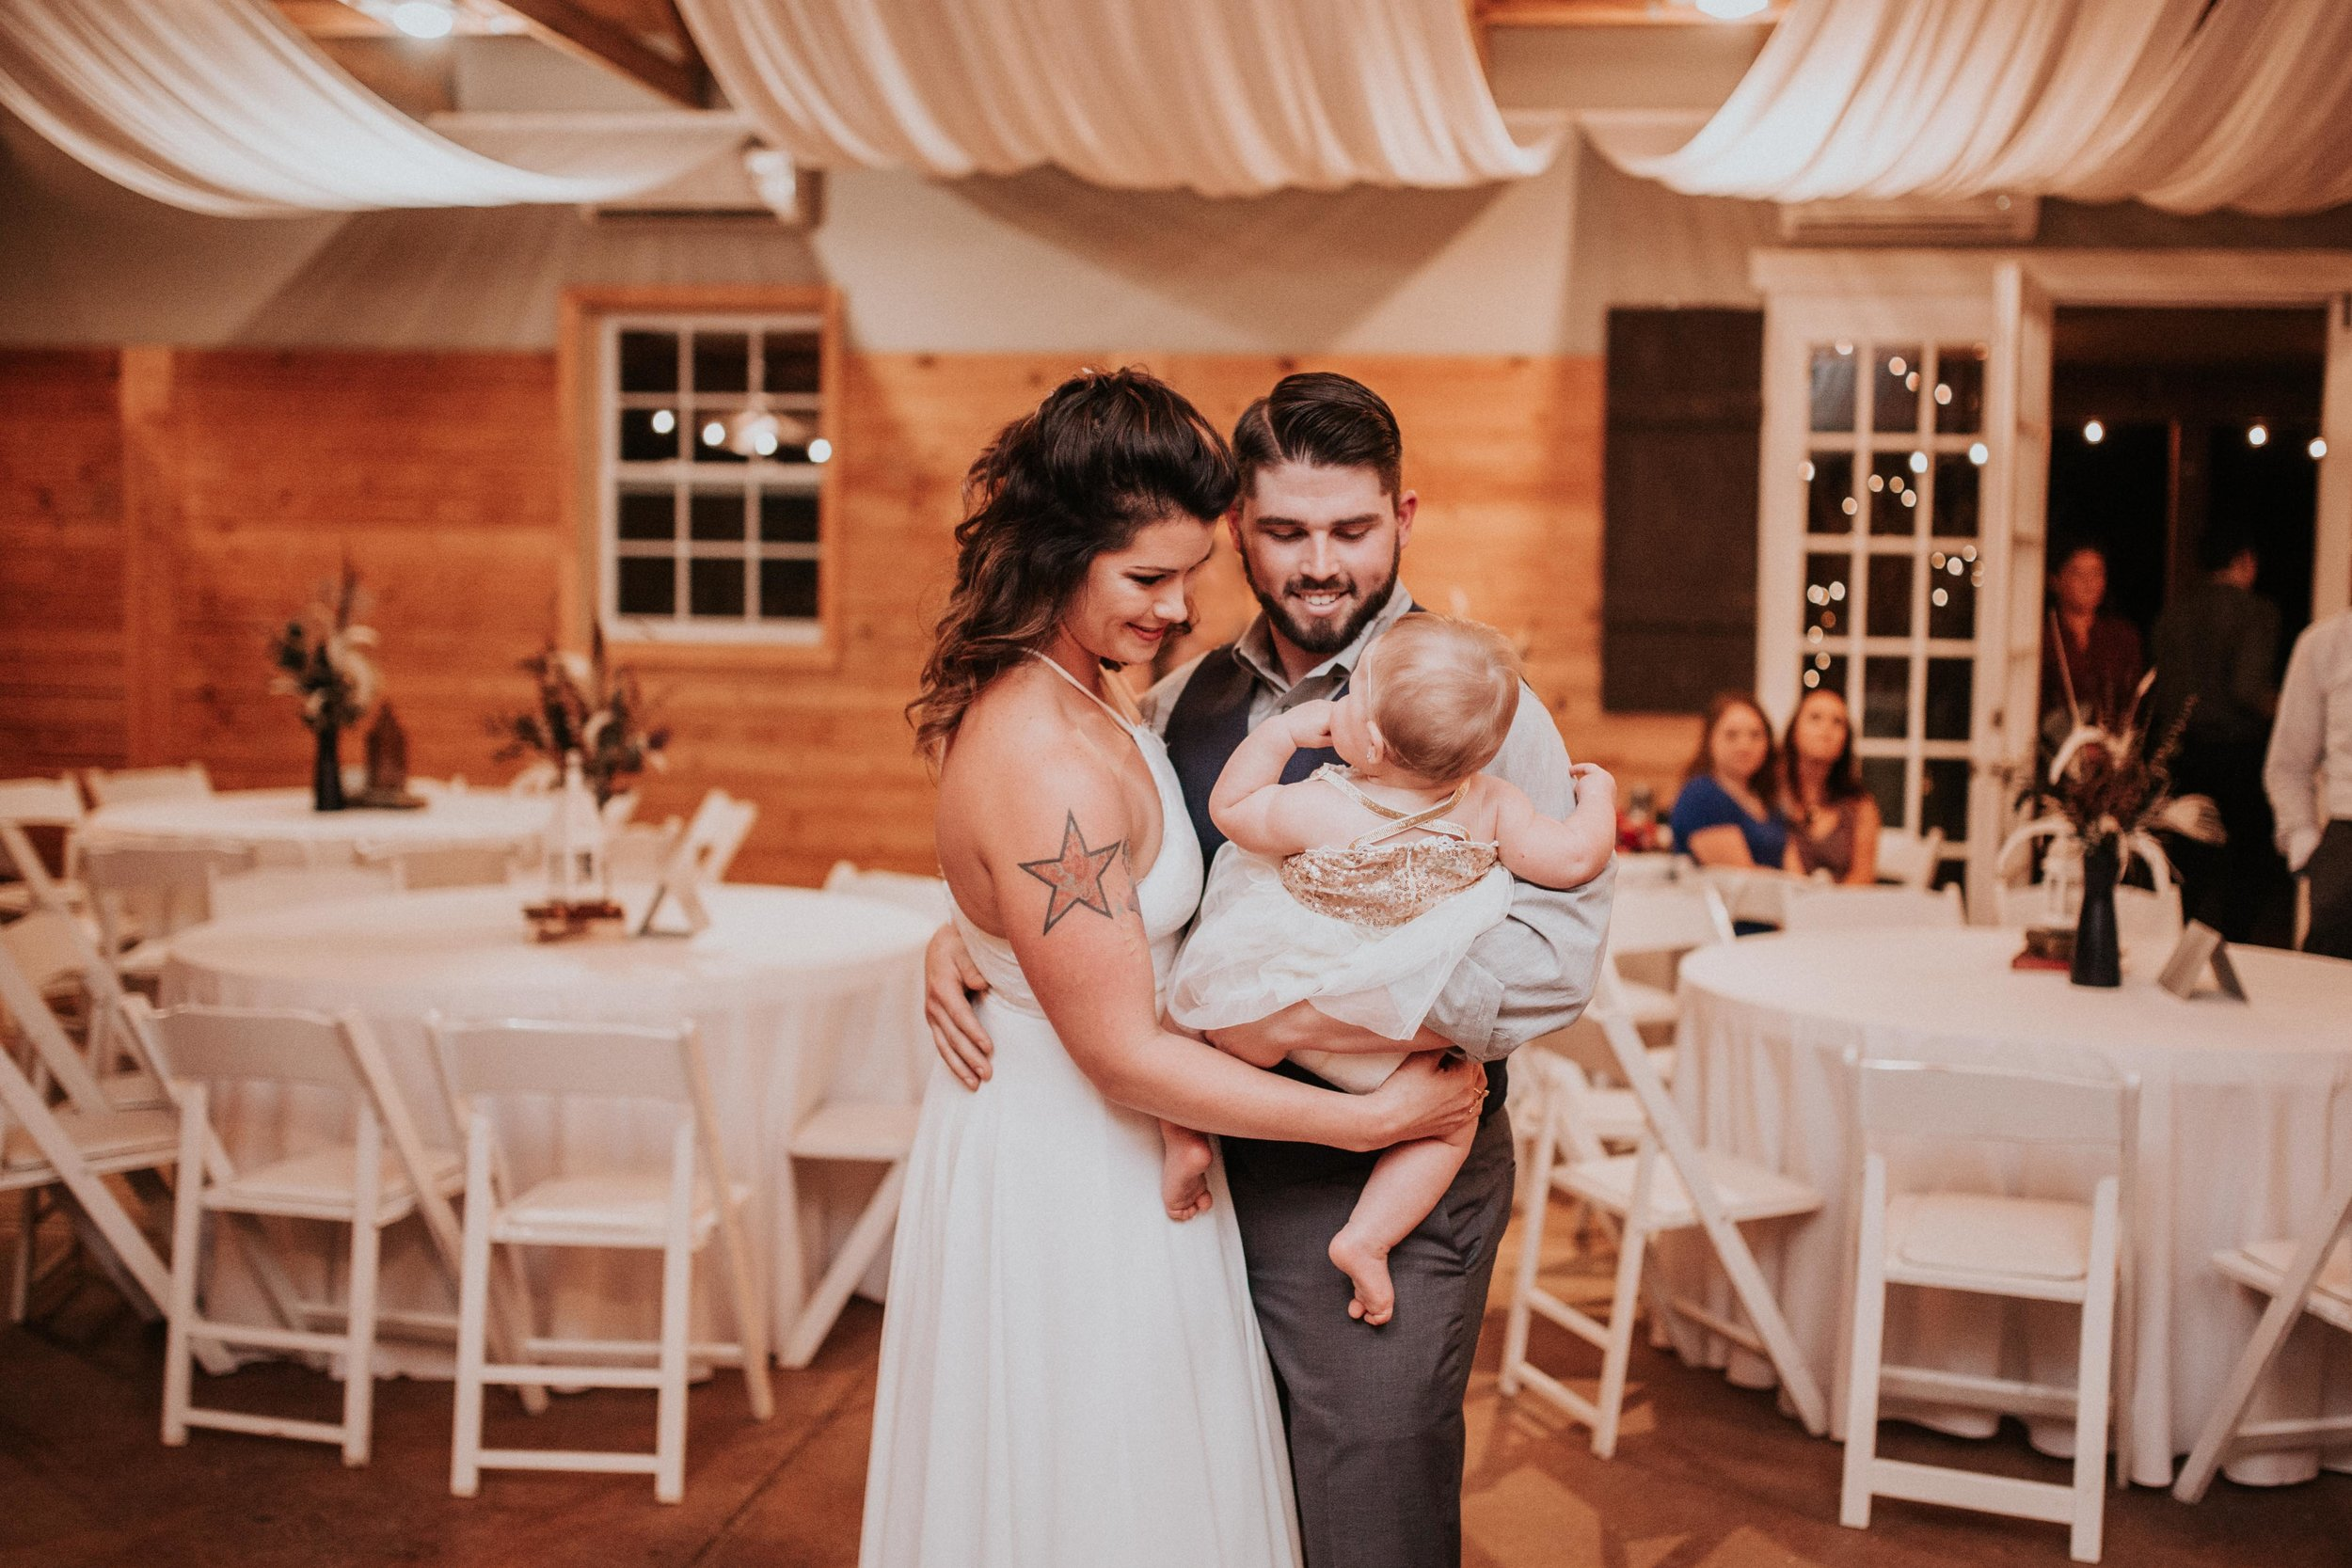 Vow Renewal in Magnolia Texas - Madeleine Frost Wedding Photographer - Sized for Blog-64.jpg